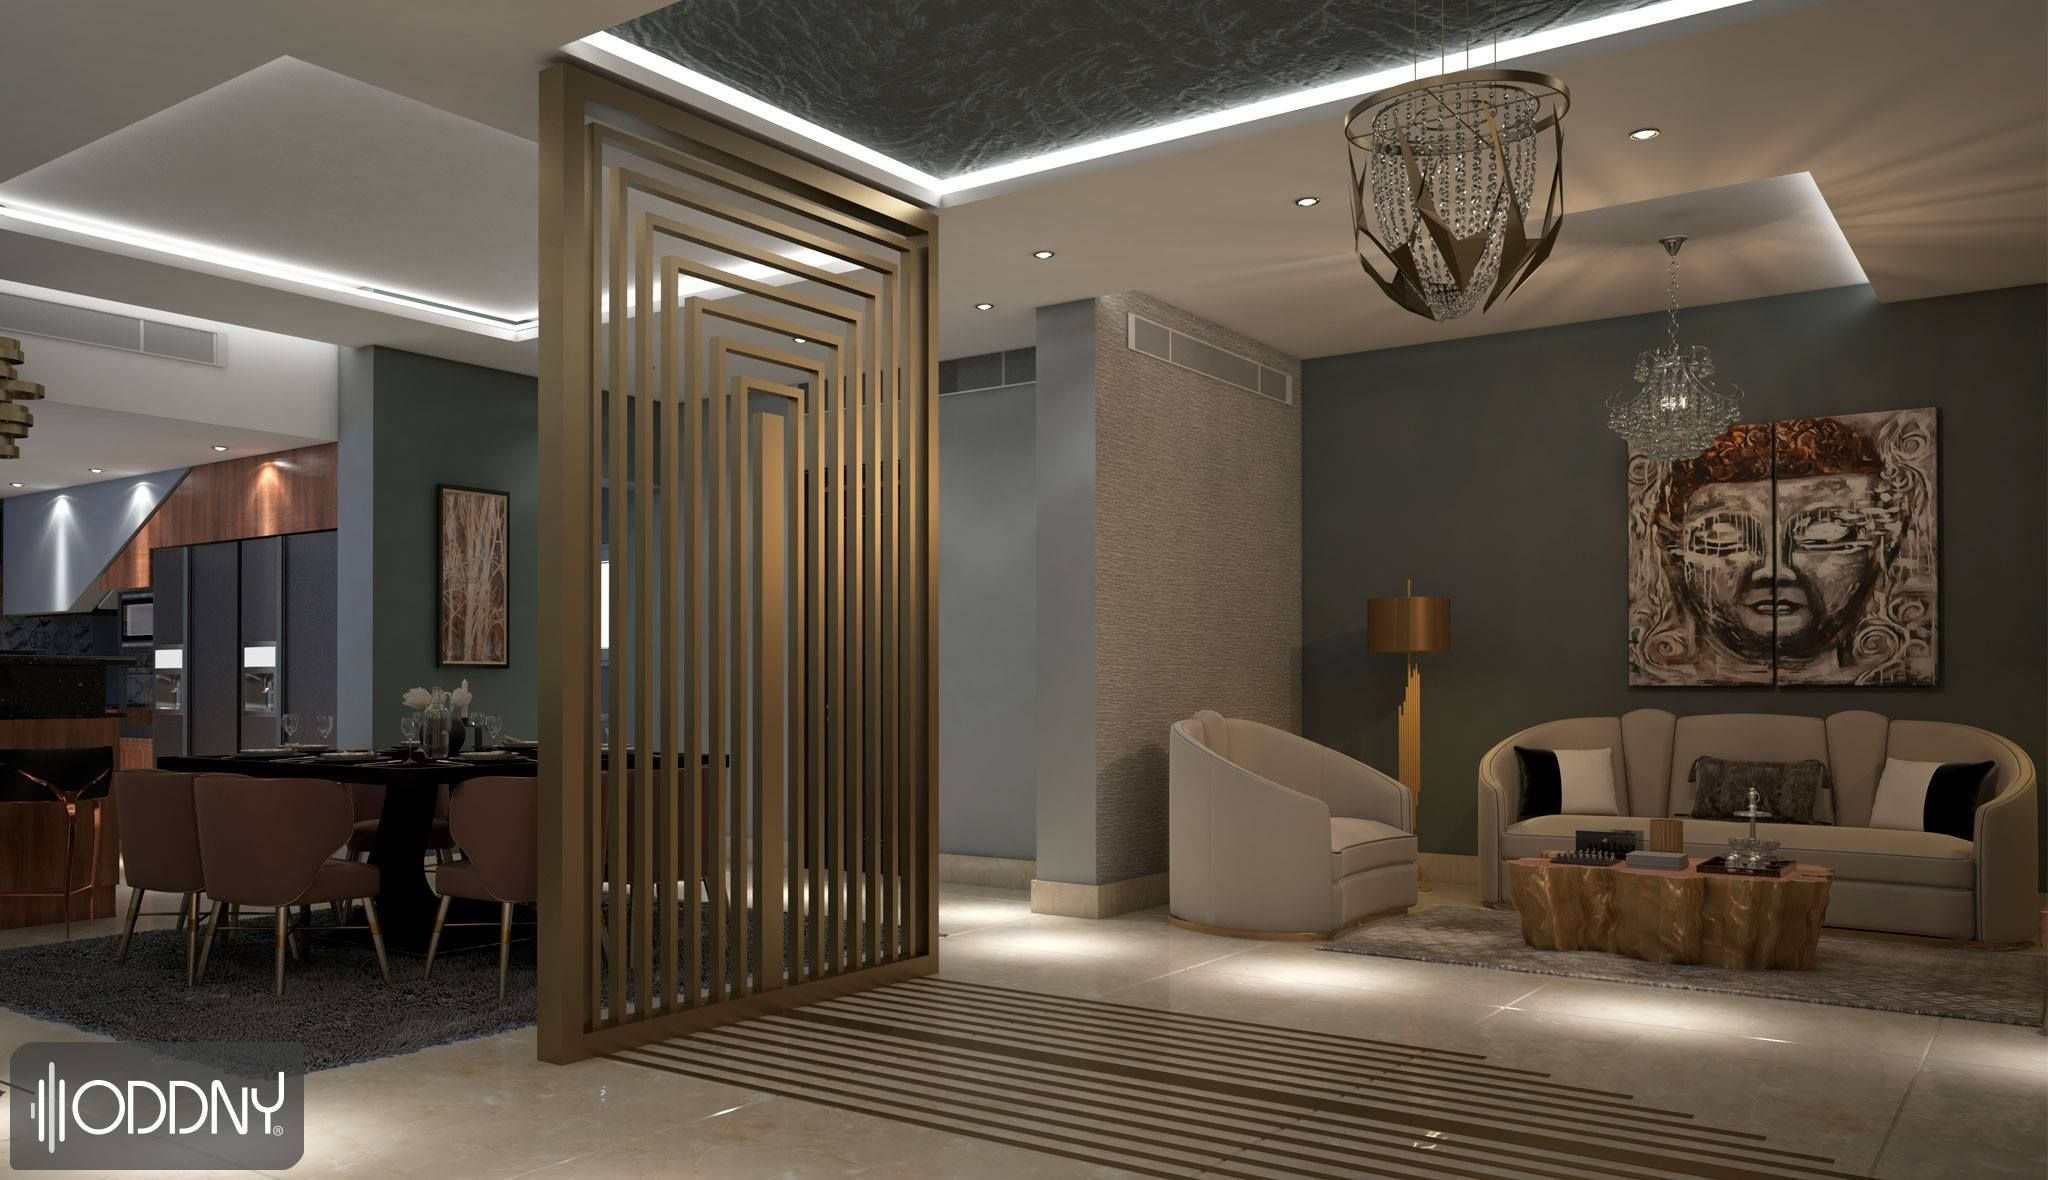 Interior Design By Oddny Design Studio We Have The Experience And